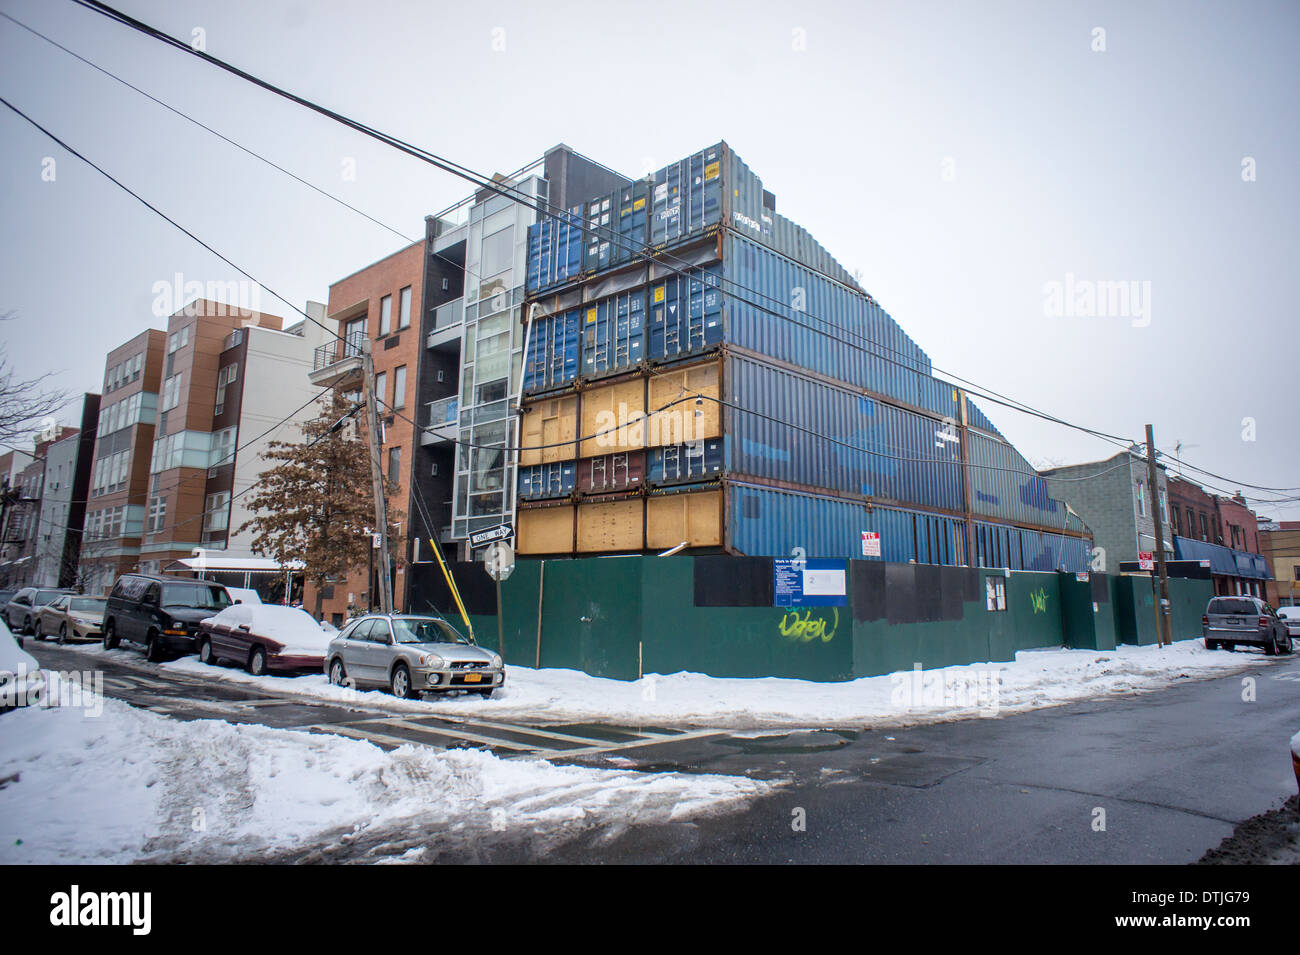 A single-family home constructed out of shipping containers is seen under construction in Williamsburg Brooklyn - Stock Image